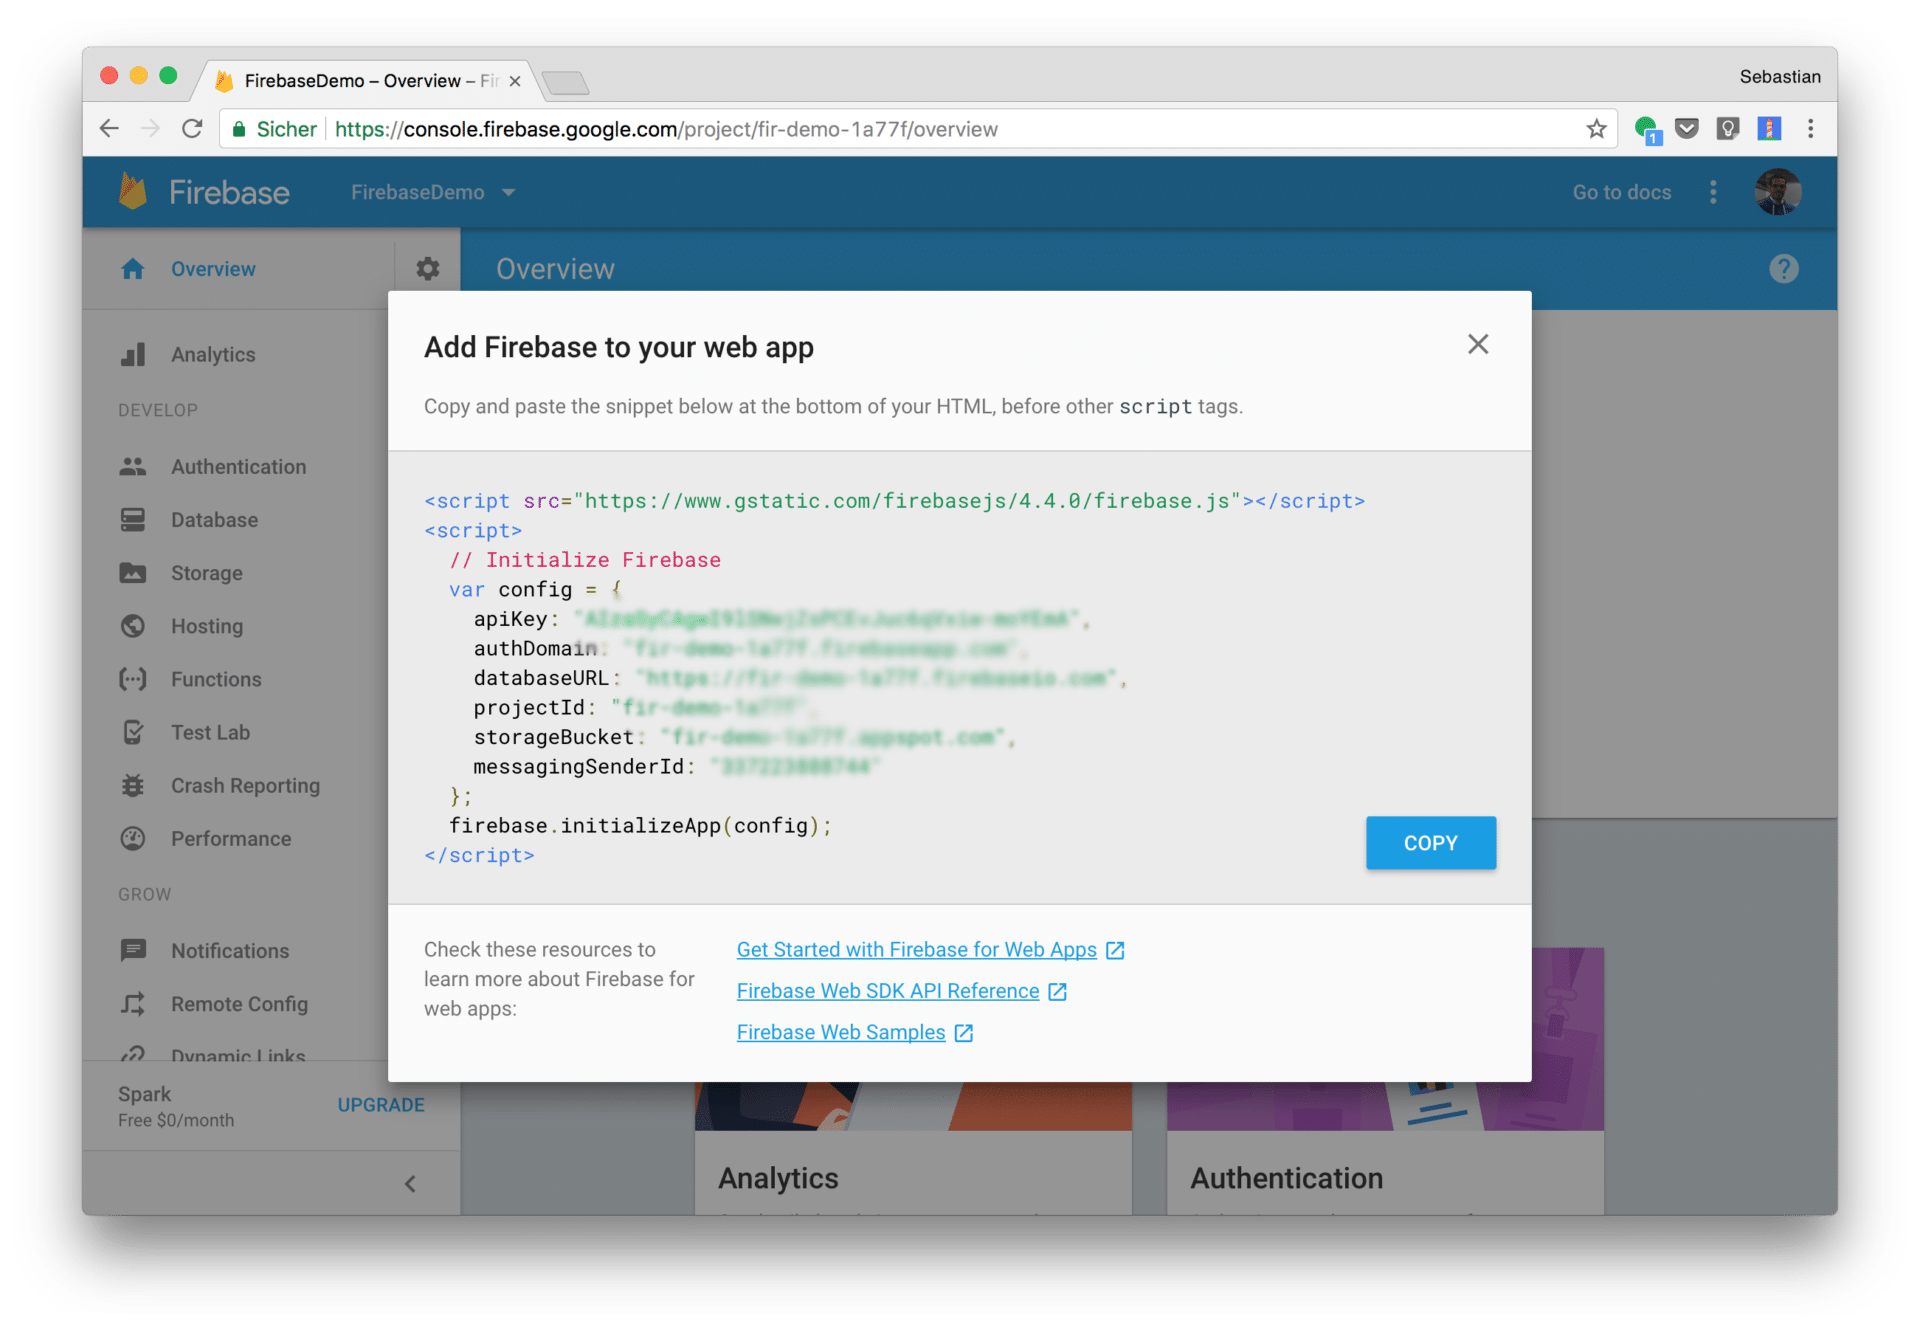 Building An Angular 5 Project with Bootstrap 4 and Firebase